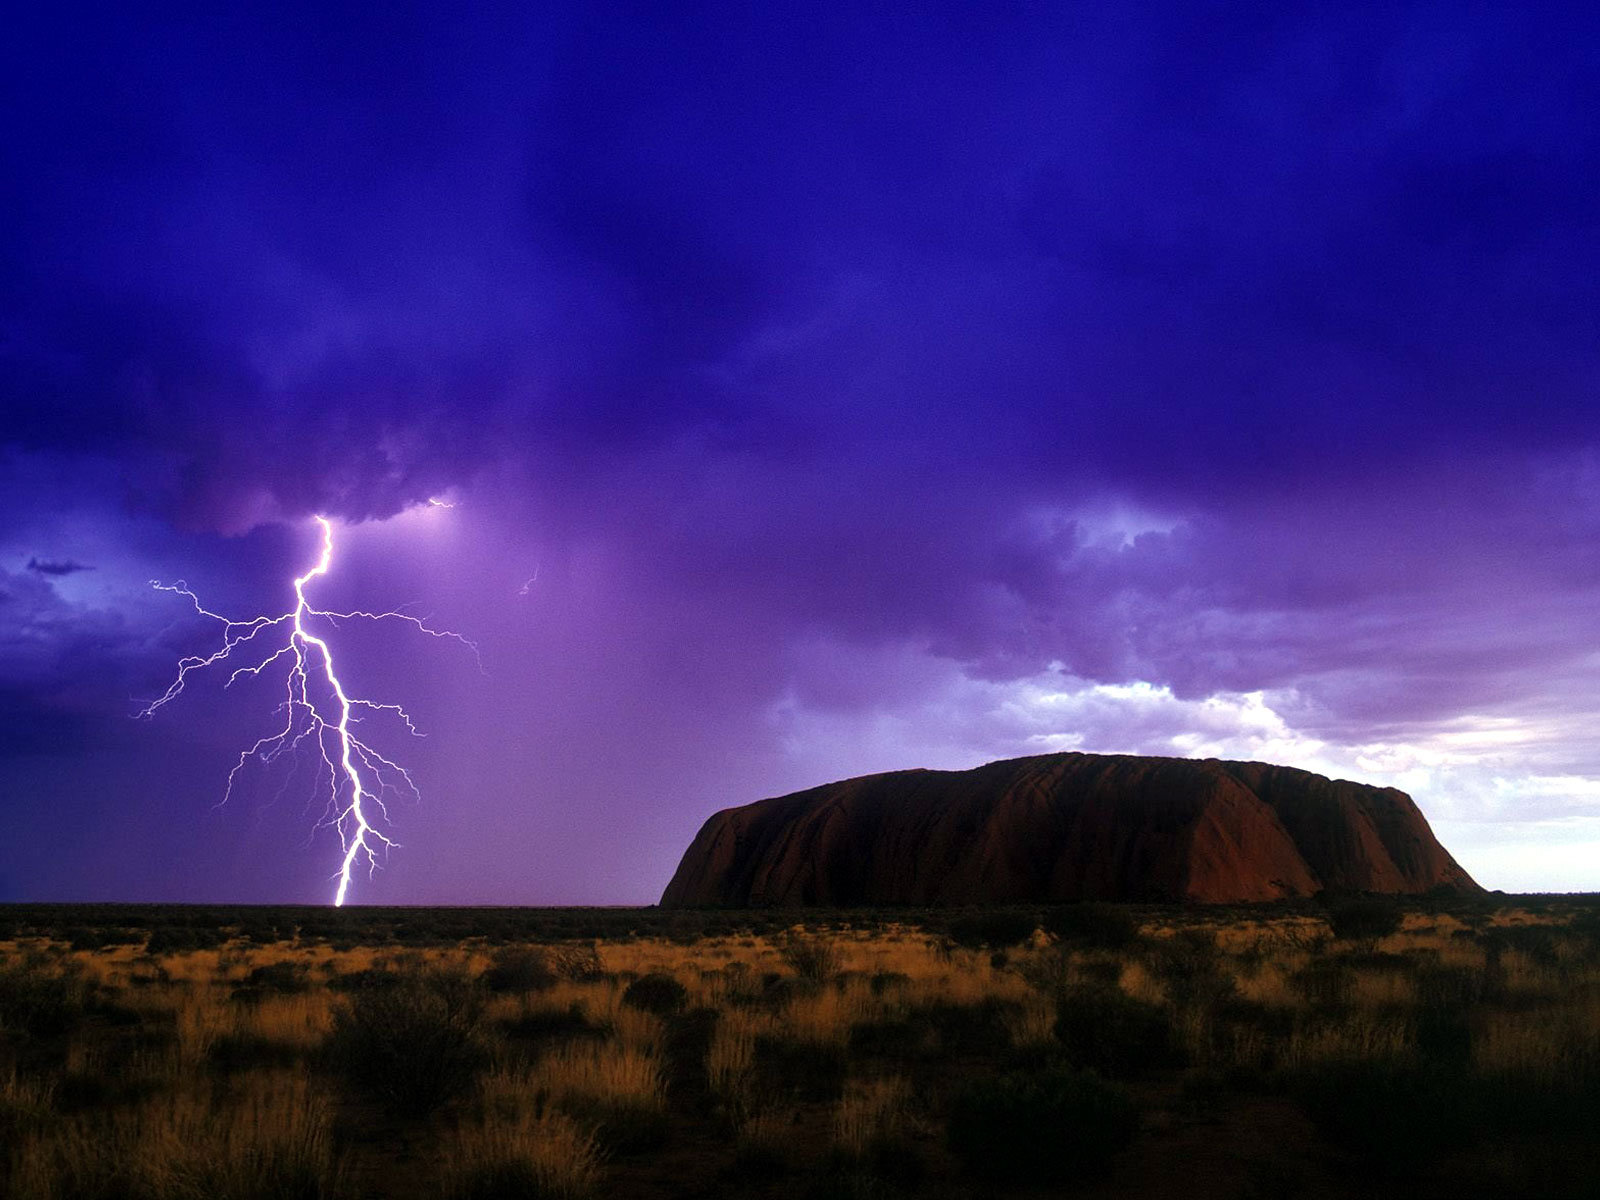 Apps For Quotes Wallpapers Ayers Rock Australia Wallpaper Faxo Faxo